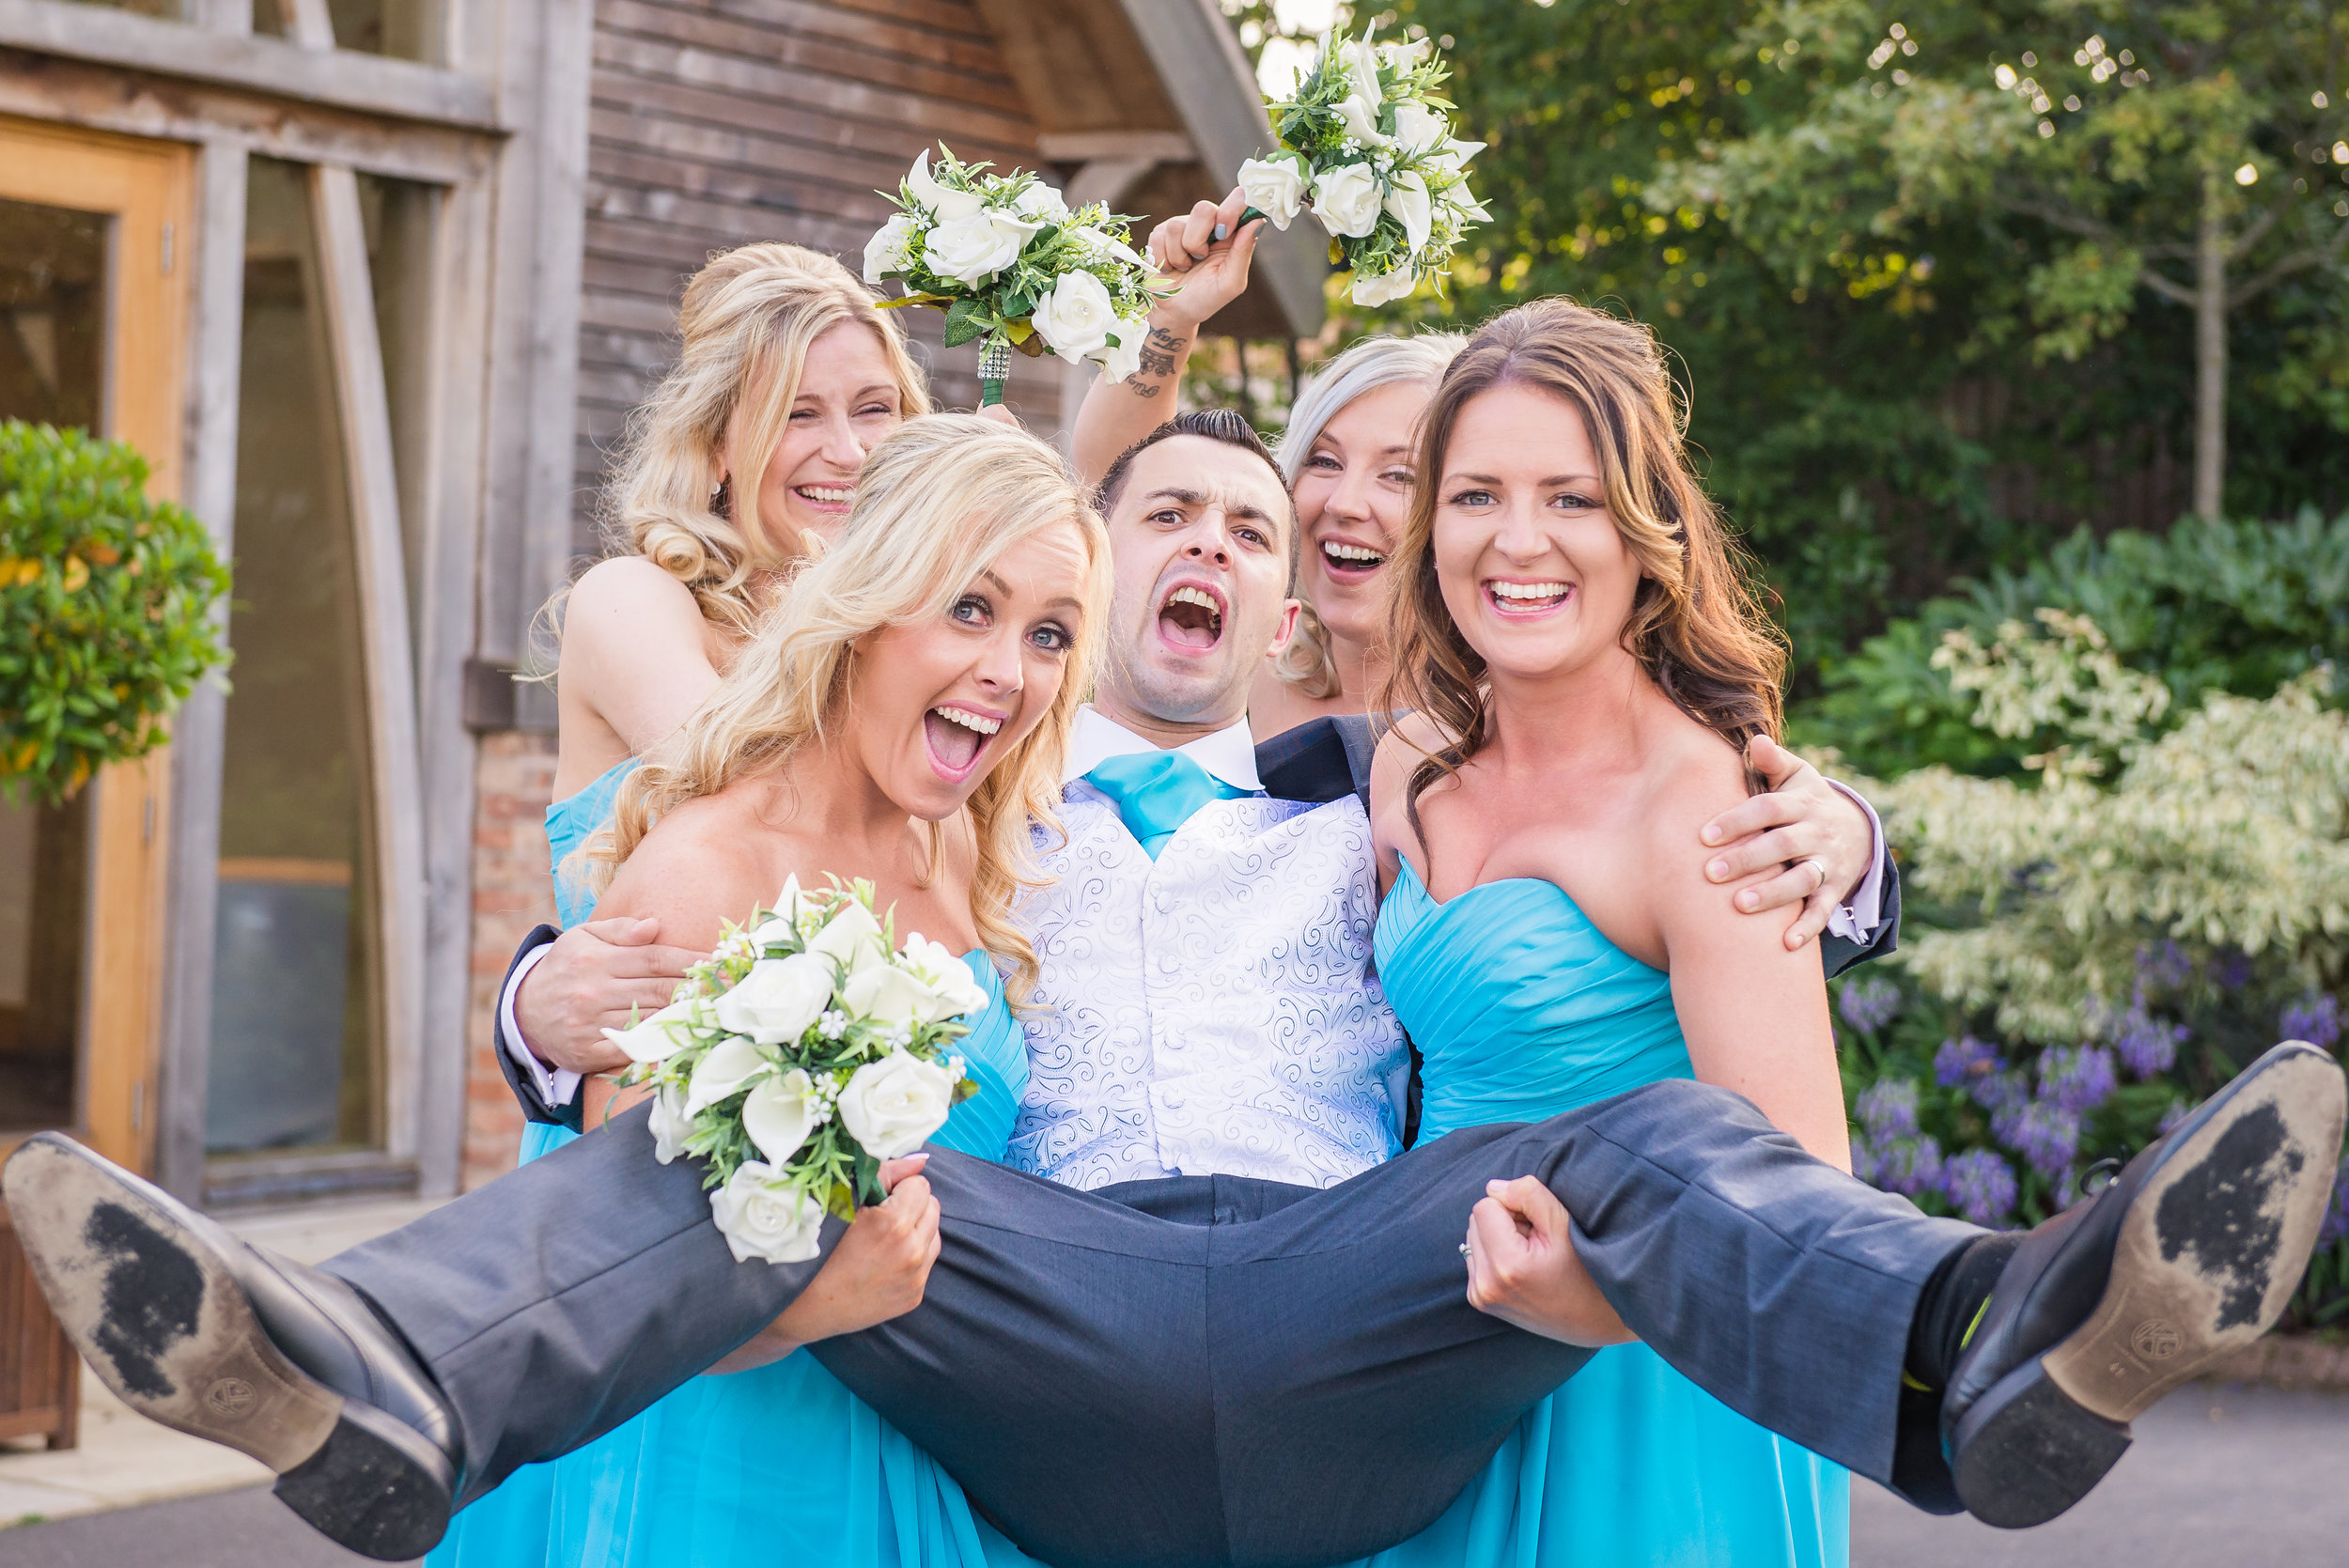 WEDDING FAMILY & FORMAL - Family and formal photography can be a lot of fun. I love capturing moments between loved ones that families would be proud to showcase on a canvas on their walls